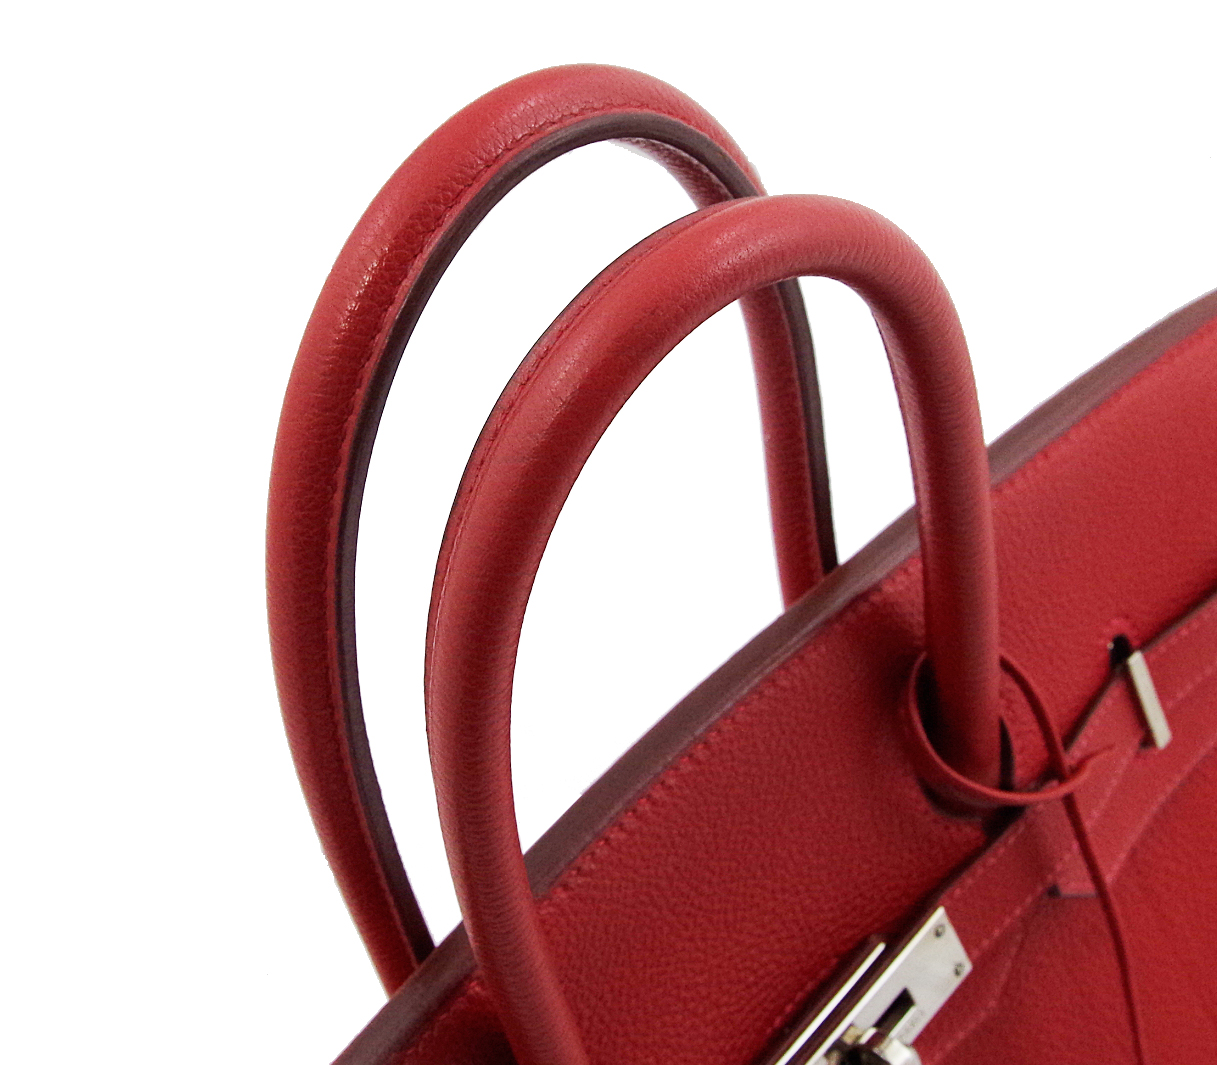 Hermes Birkin 35 hand tote bags Red Red silver fittings there Birkin35 Black 2674332ce8d6f